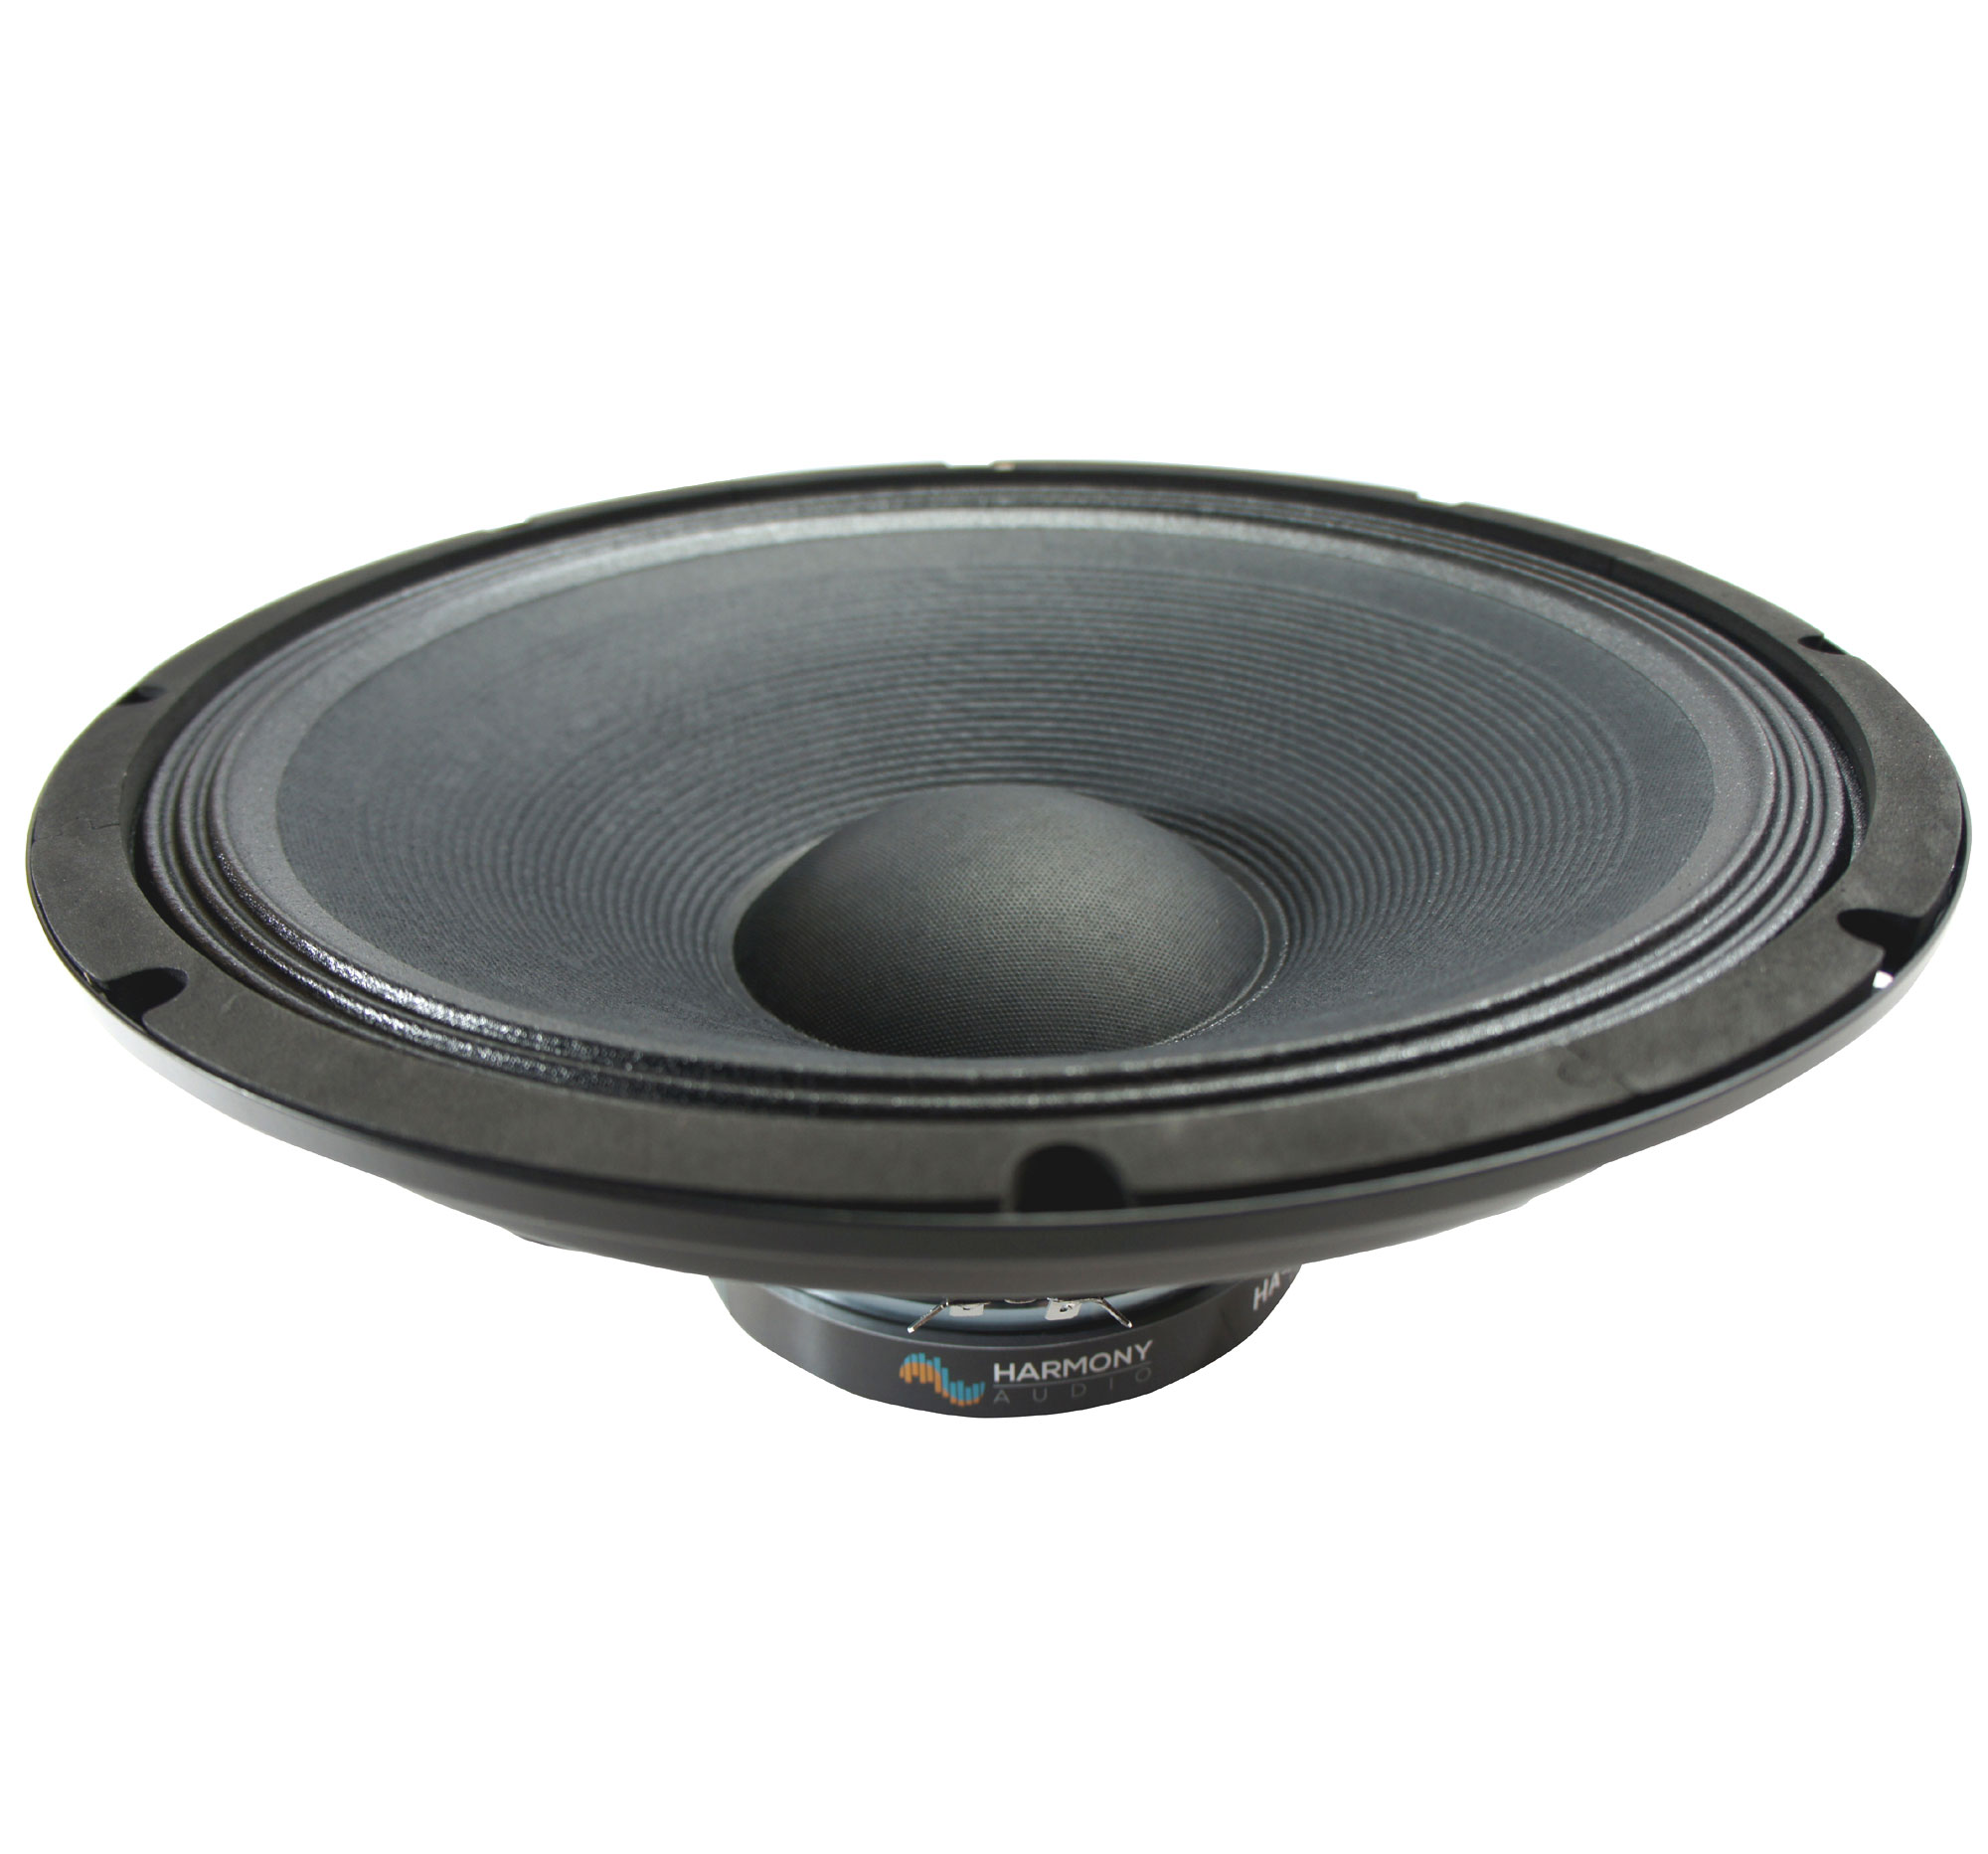 "Harmony HA-P15WS8 Replacement 15"" PA Speaker 8 Ohm Woofer for JBL PRX415M"